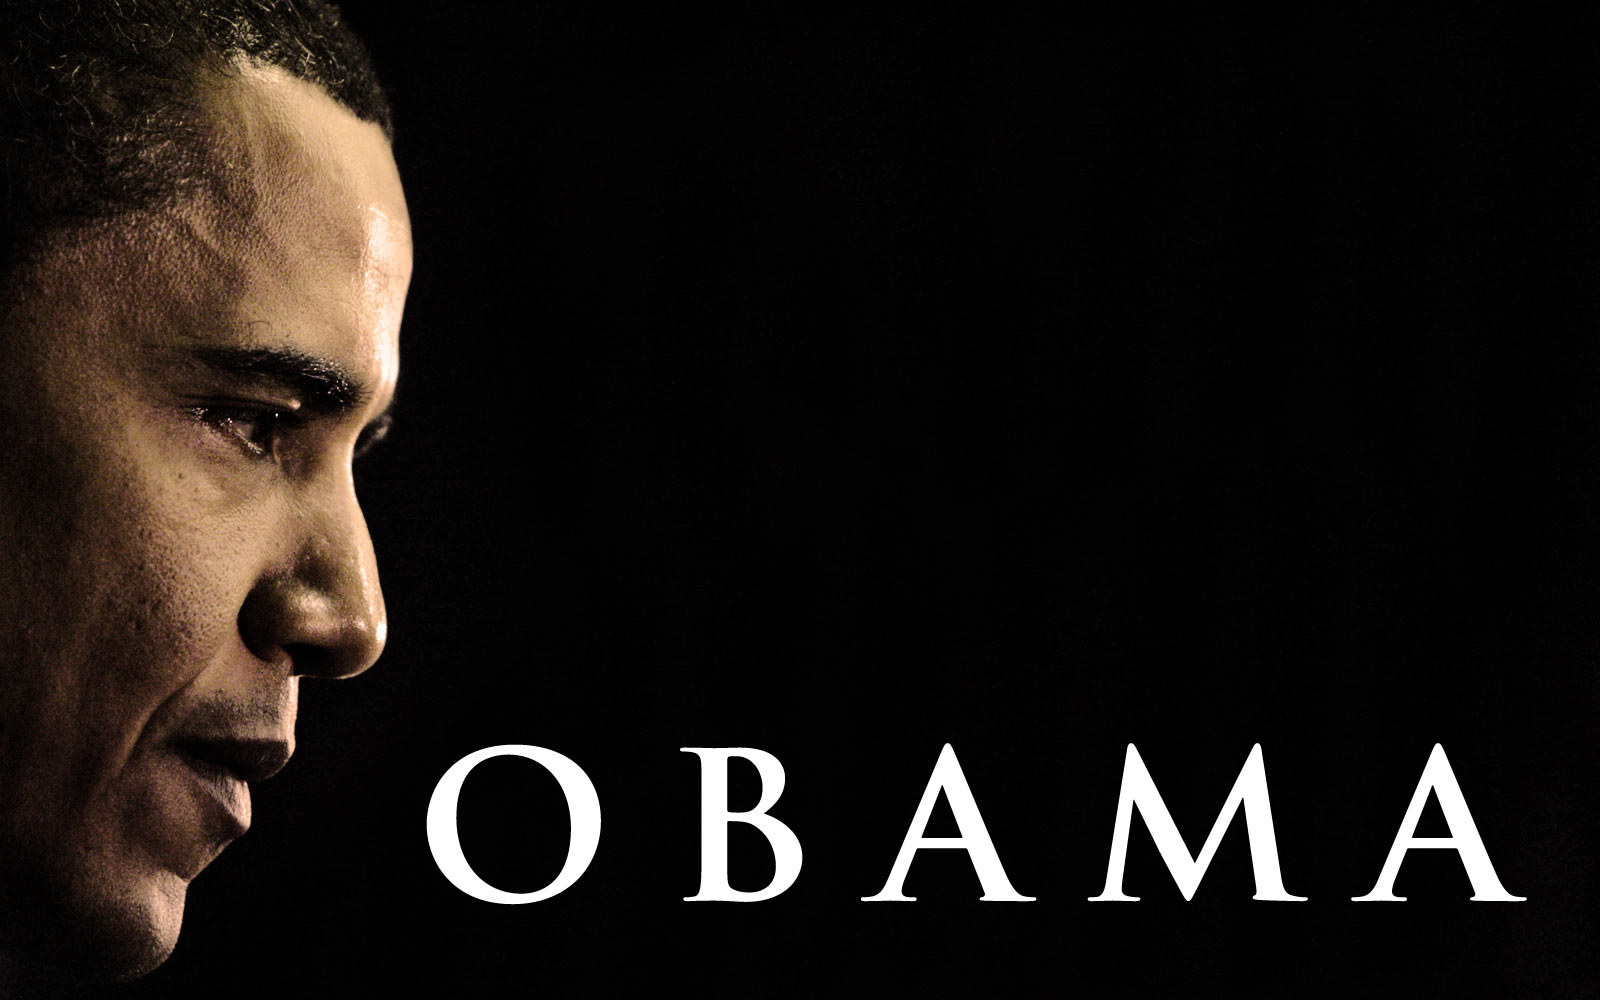 Barack Obama HD Wallpapers HD Wallpapers 360 1600x1000